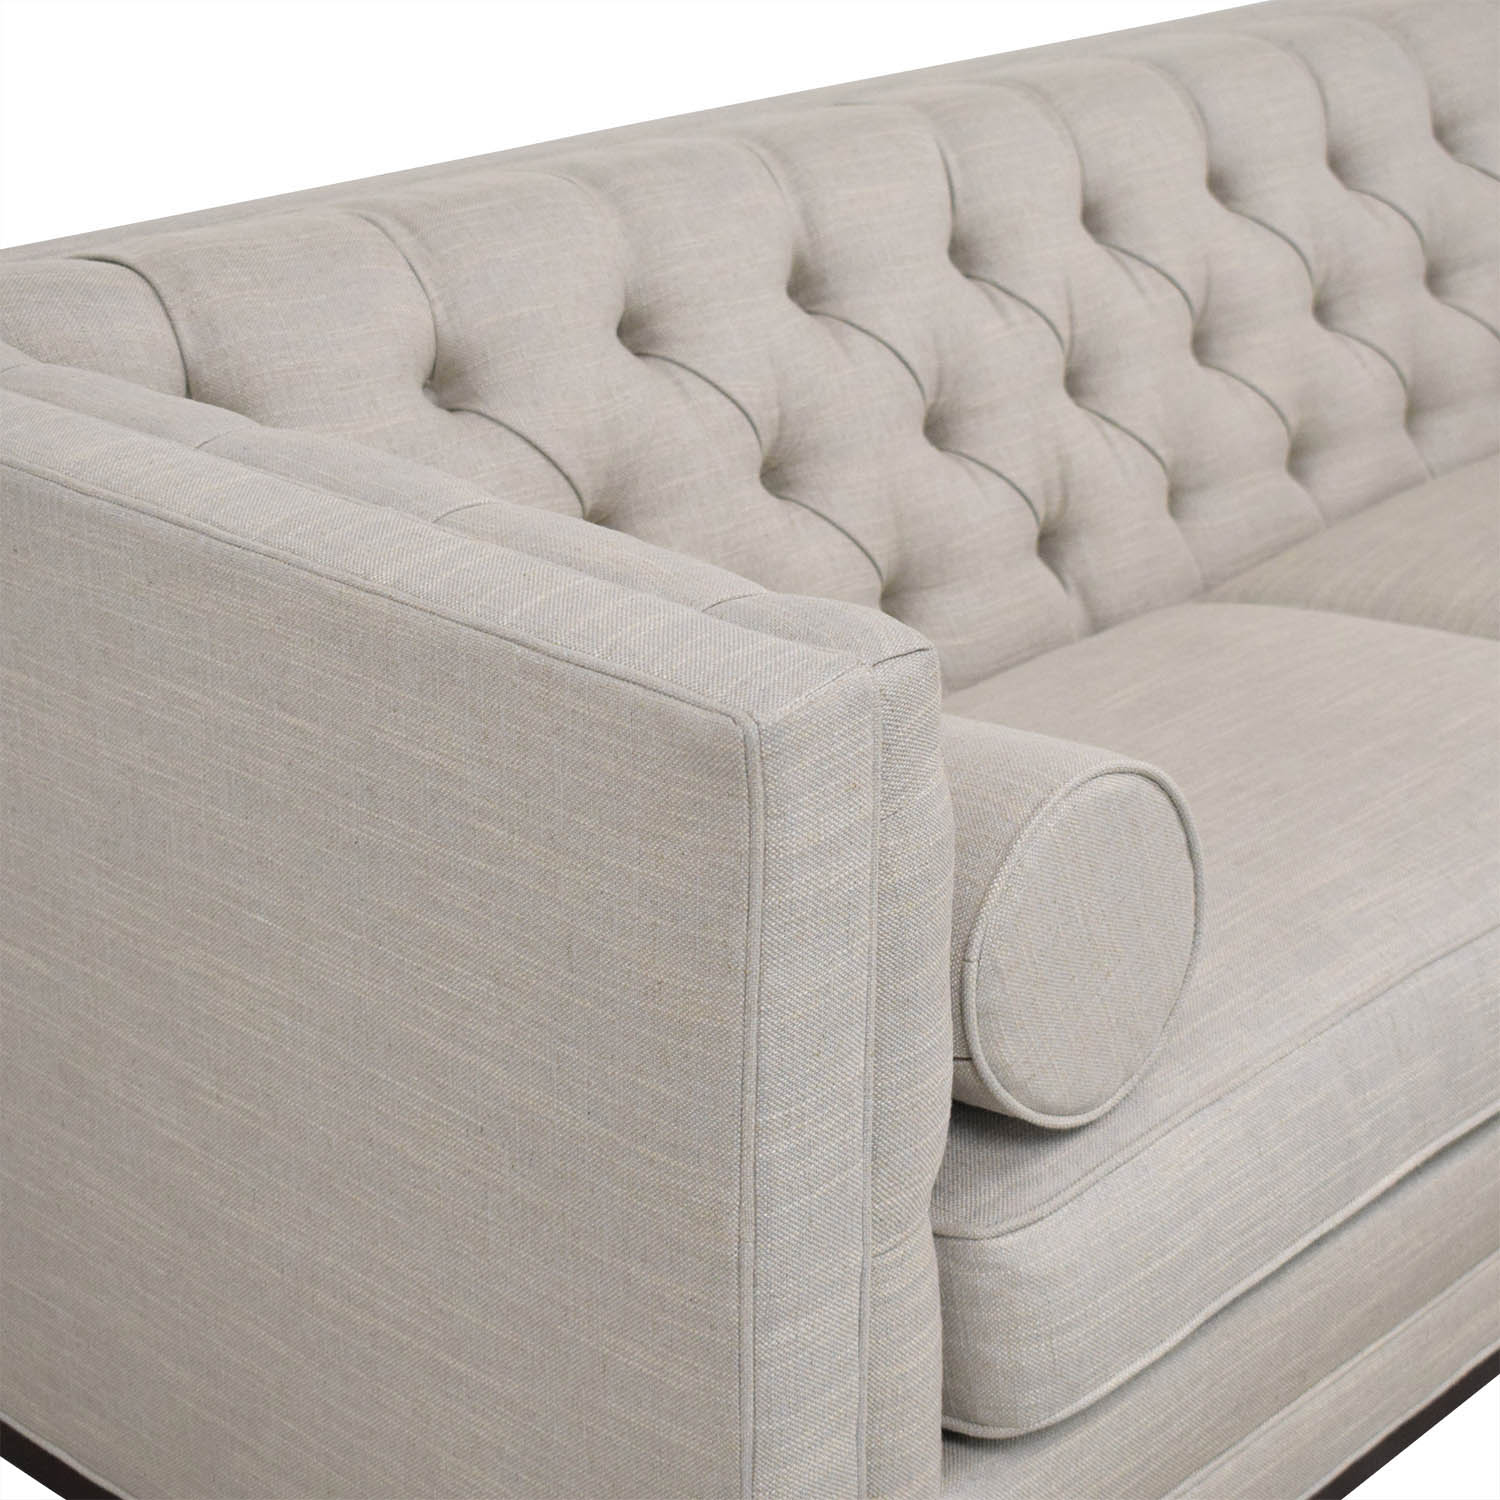 Swell 62 Off Ethan Allen Ethan Allen Anderson Couch Sofas Gmtry Best Dining Table And Chair Ideas Images Gmtryco